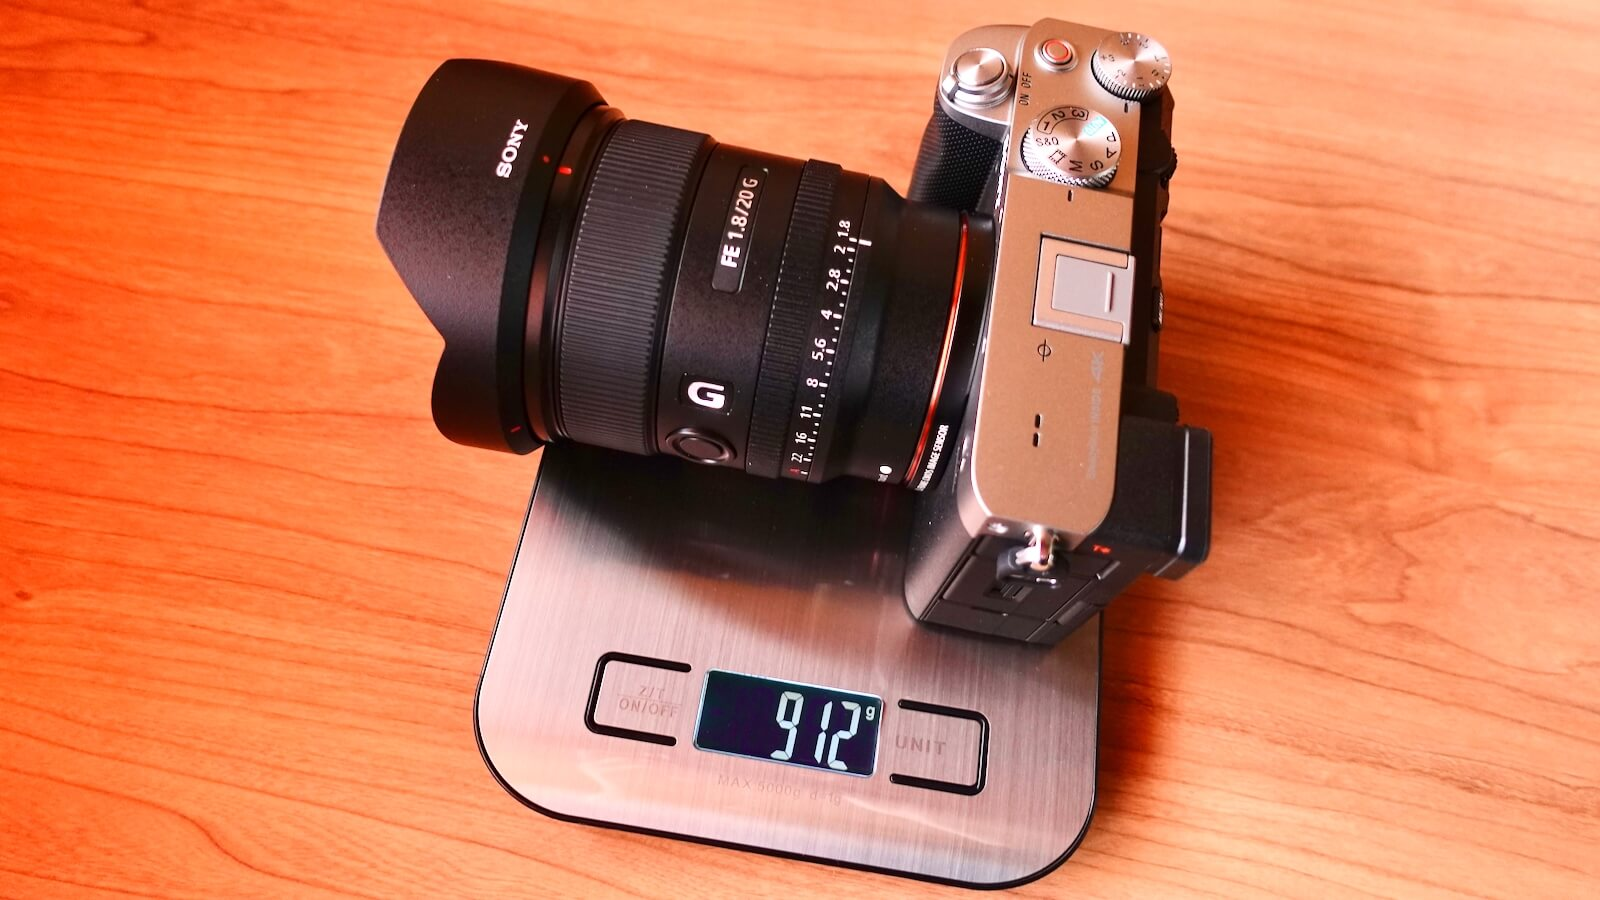 Photograph of α7c and FE 20mm F1.8 G lens attached and weighing